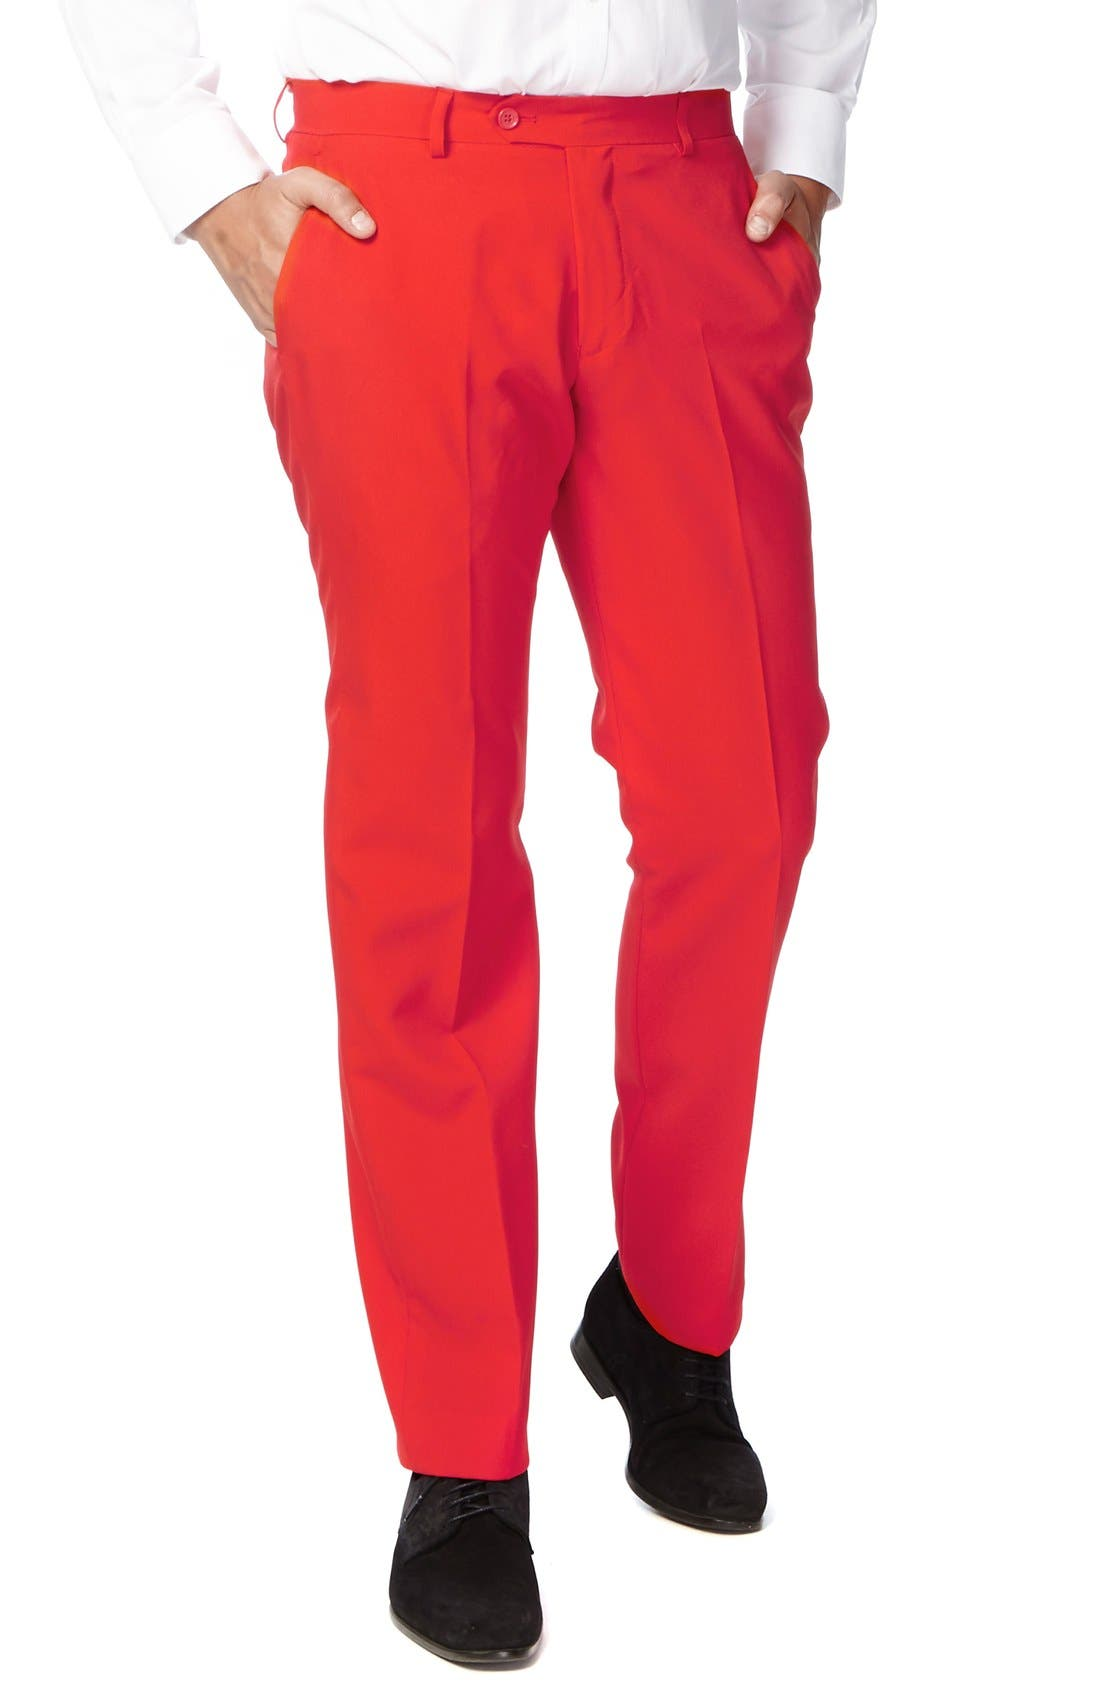 Alternate Image 3  - OppoSuit 'Red Devil' Trim Fit Two-Piece Suit with Tie